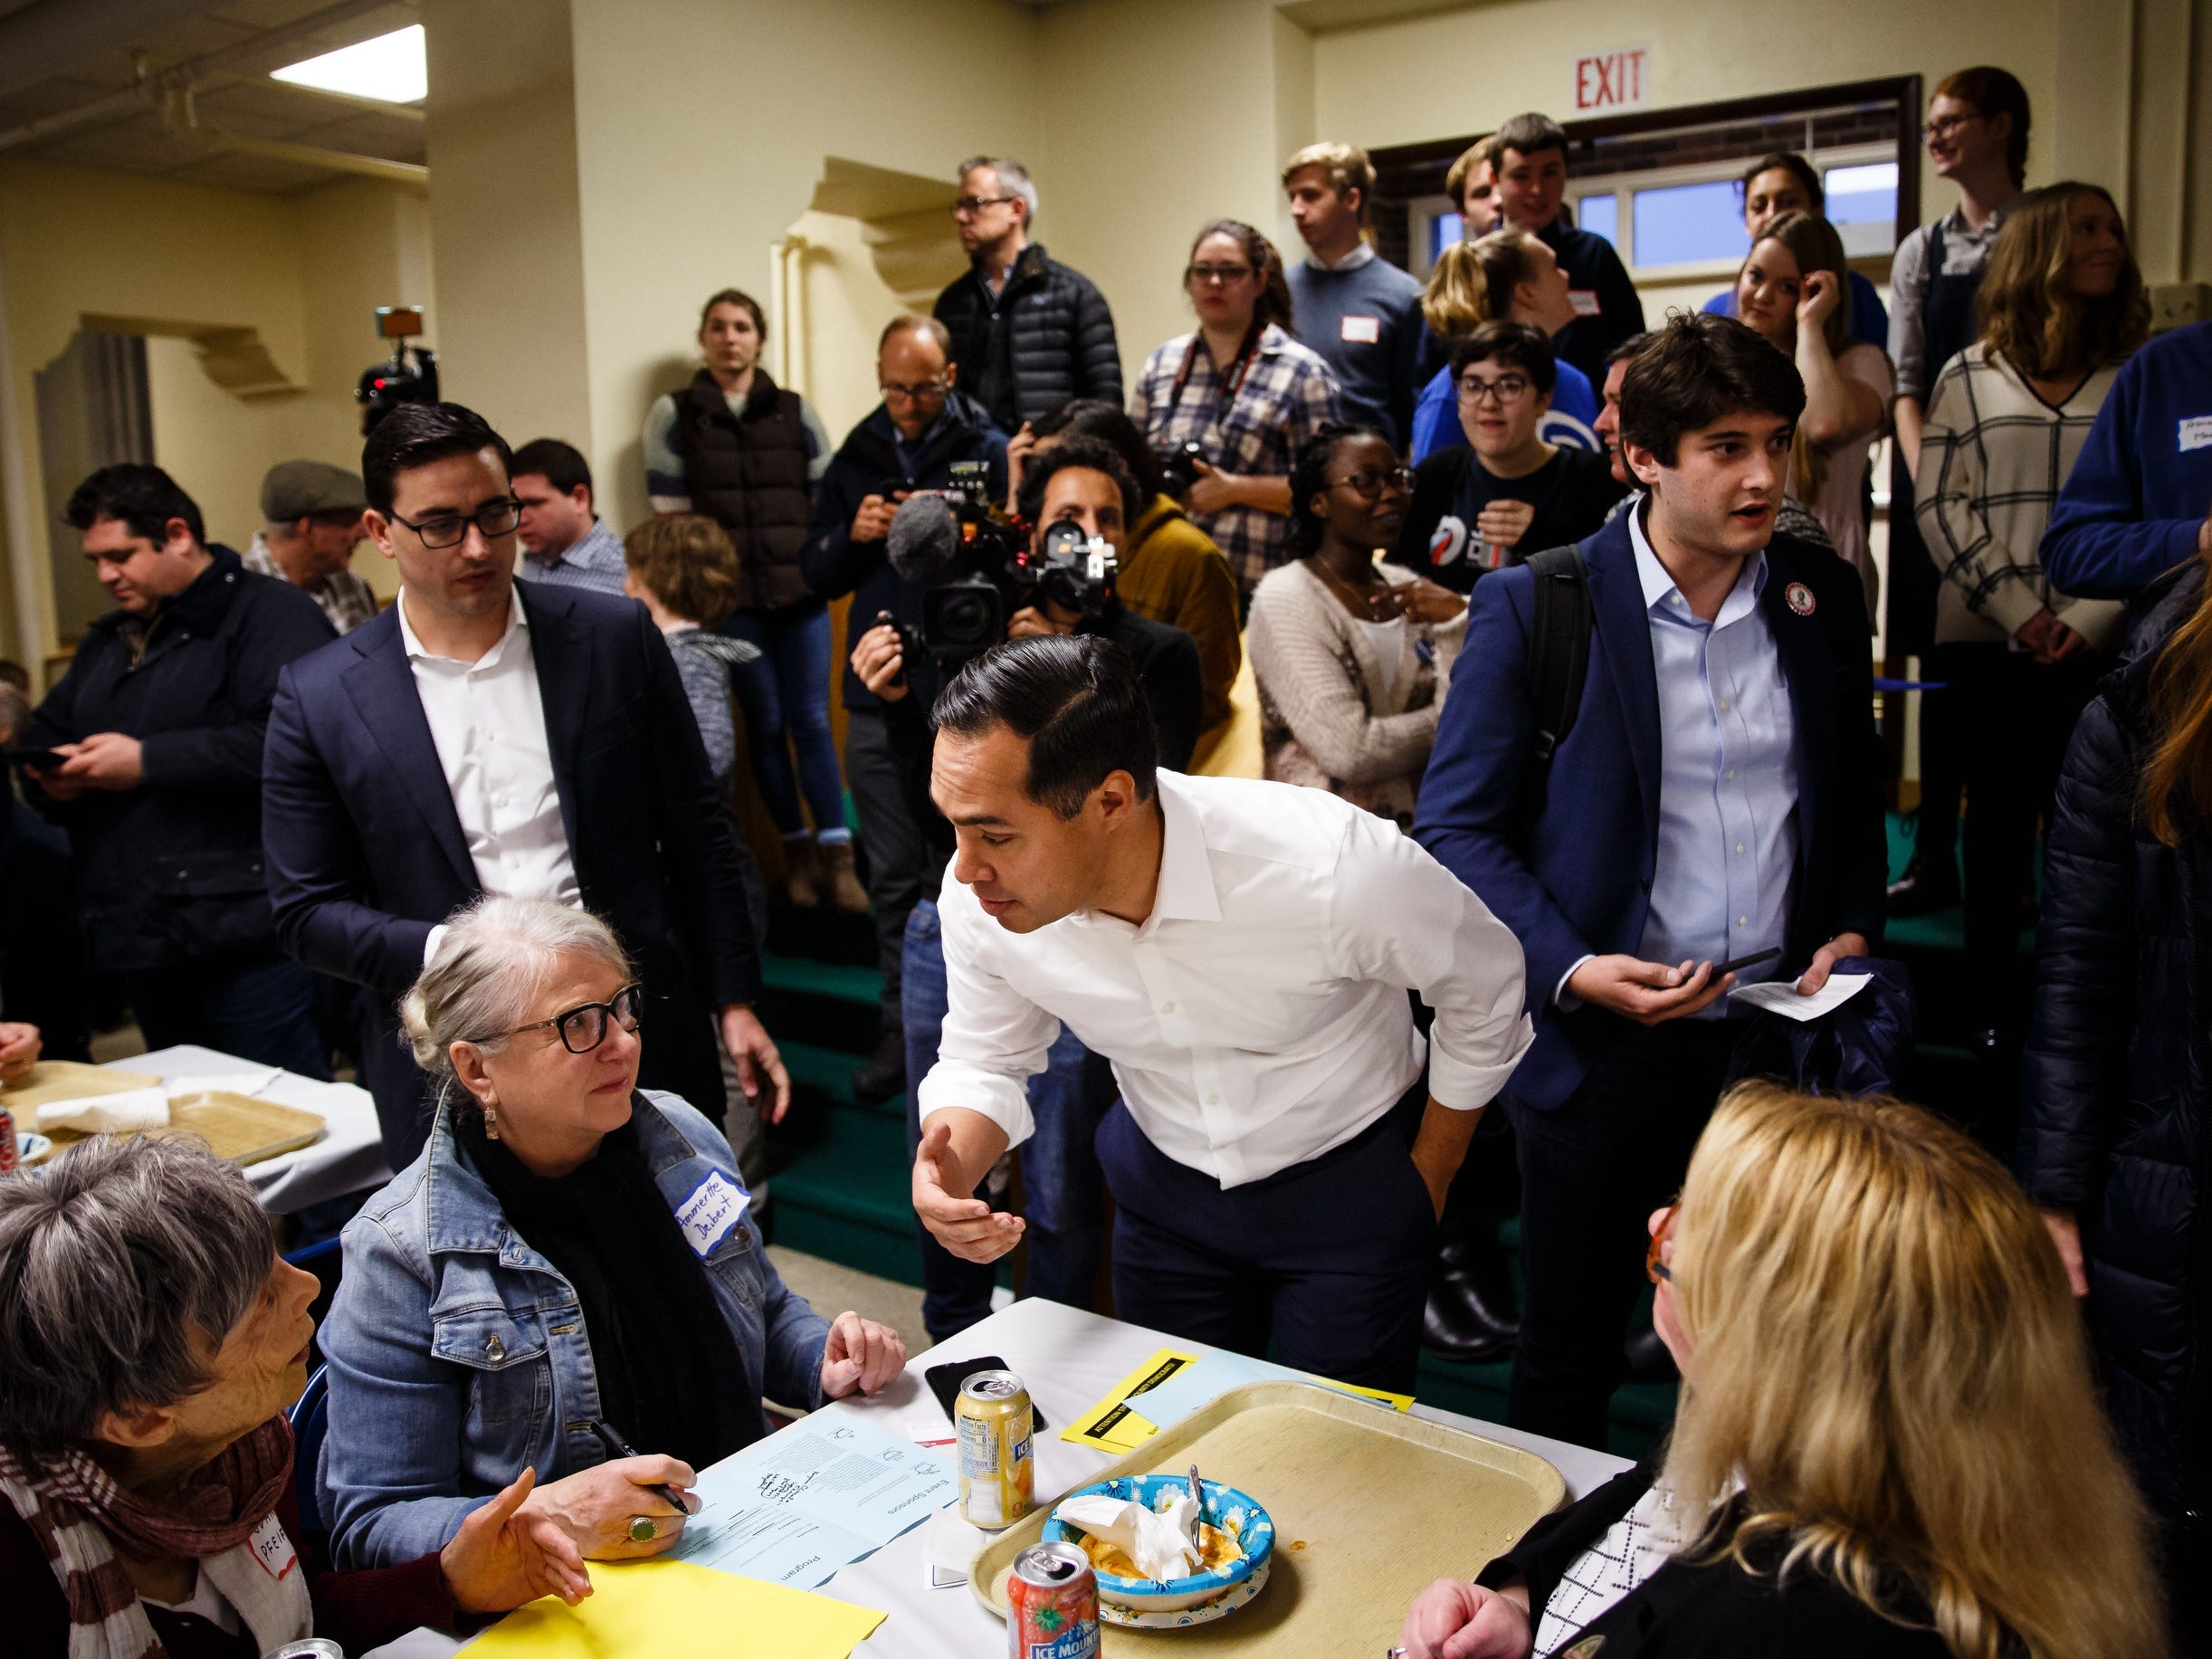 Former Housing and Urban Development Secretary Julian Castro talks to people before speaking at the Story County Democrats: Annual Soup Supper Fundraiser on Saturday, Feb. 23, 2019 in Ames.